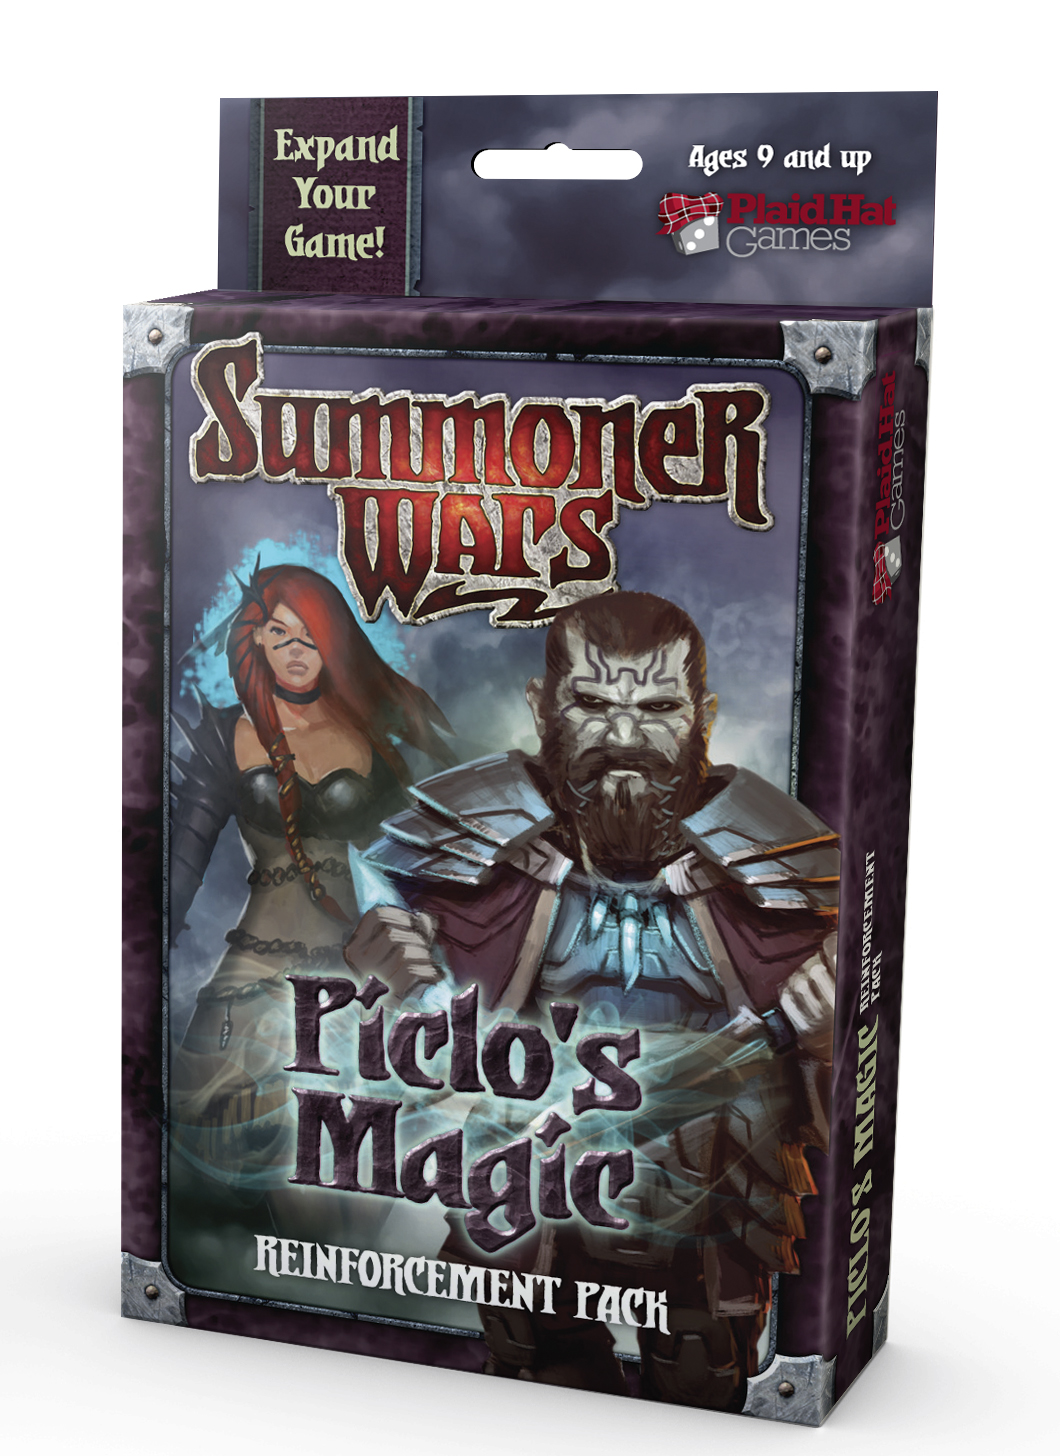 Summoner Wars: Piclo's Magic by Plaid Hat Games